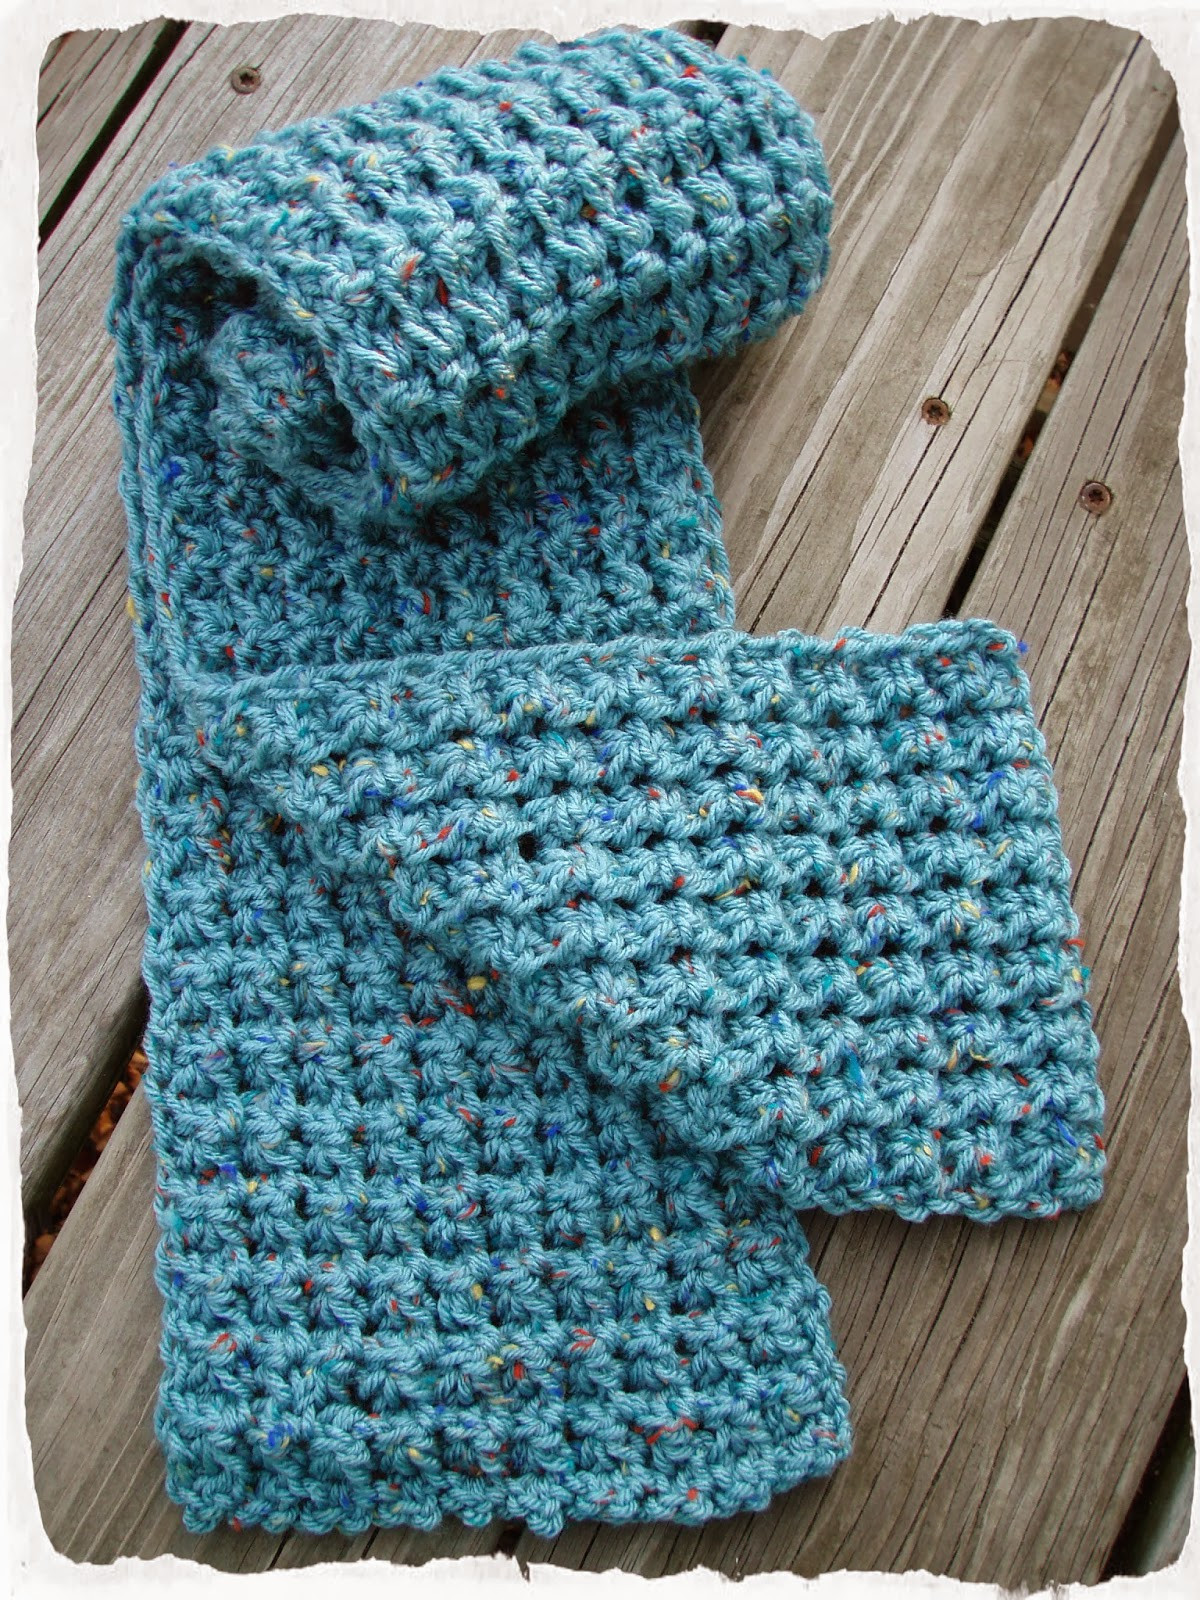 Crochet Scarf Patterns Awesome This Housewife Life Trinity Stitch Scarf Free Pattern Of Charming 49 Models Crochet Scarf Patterns